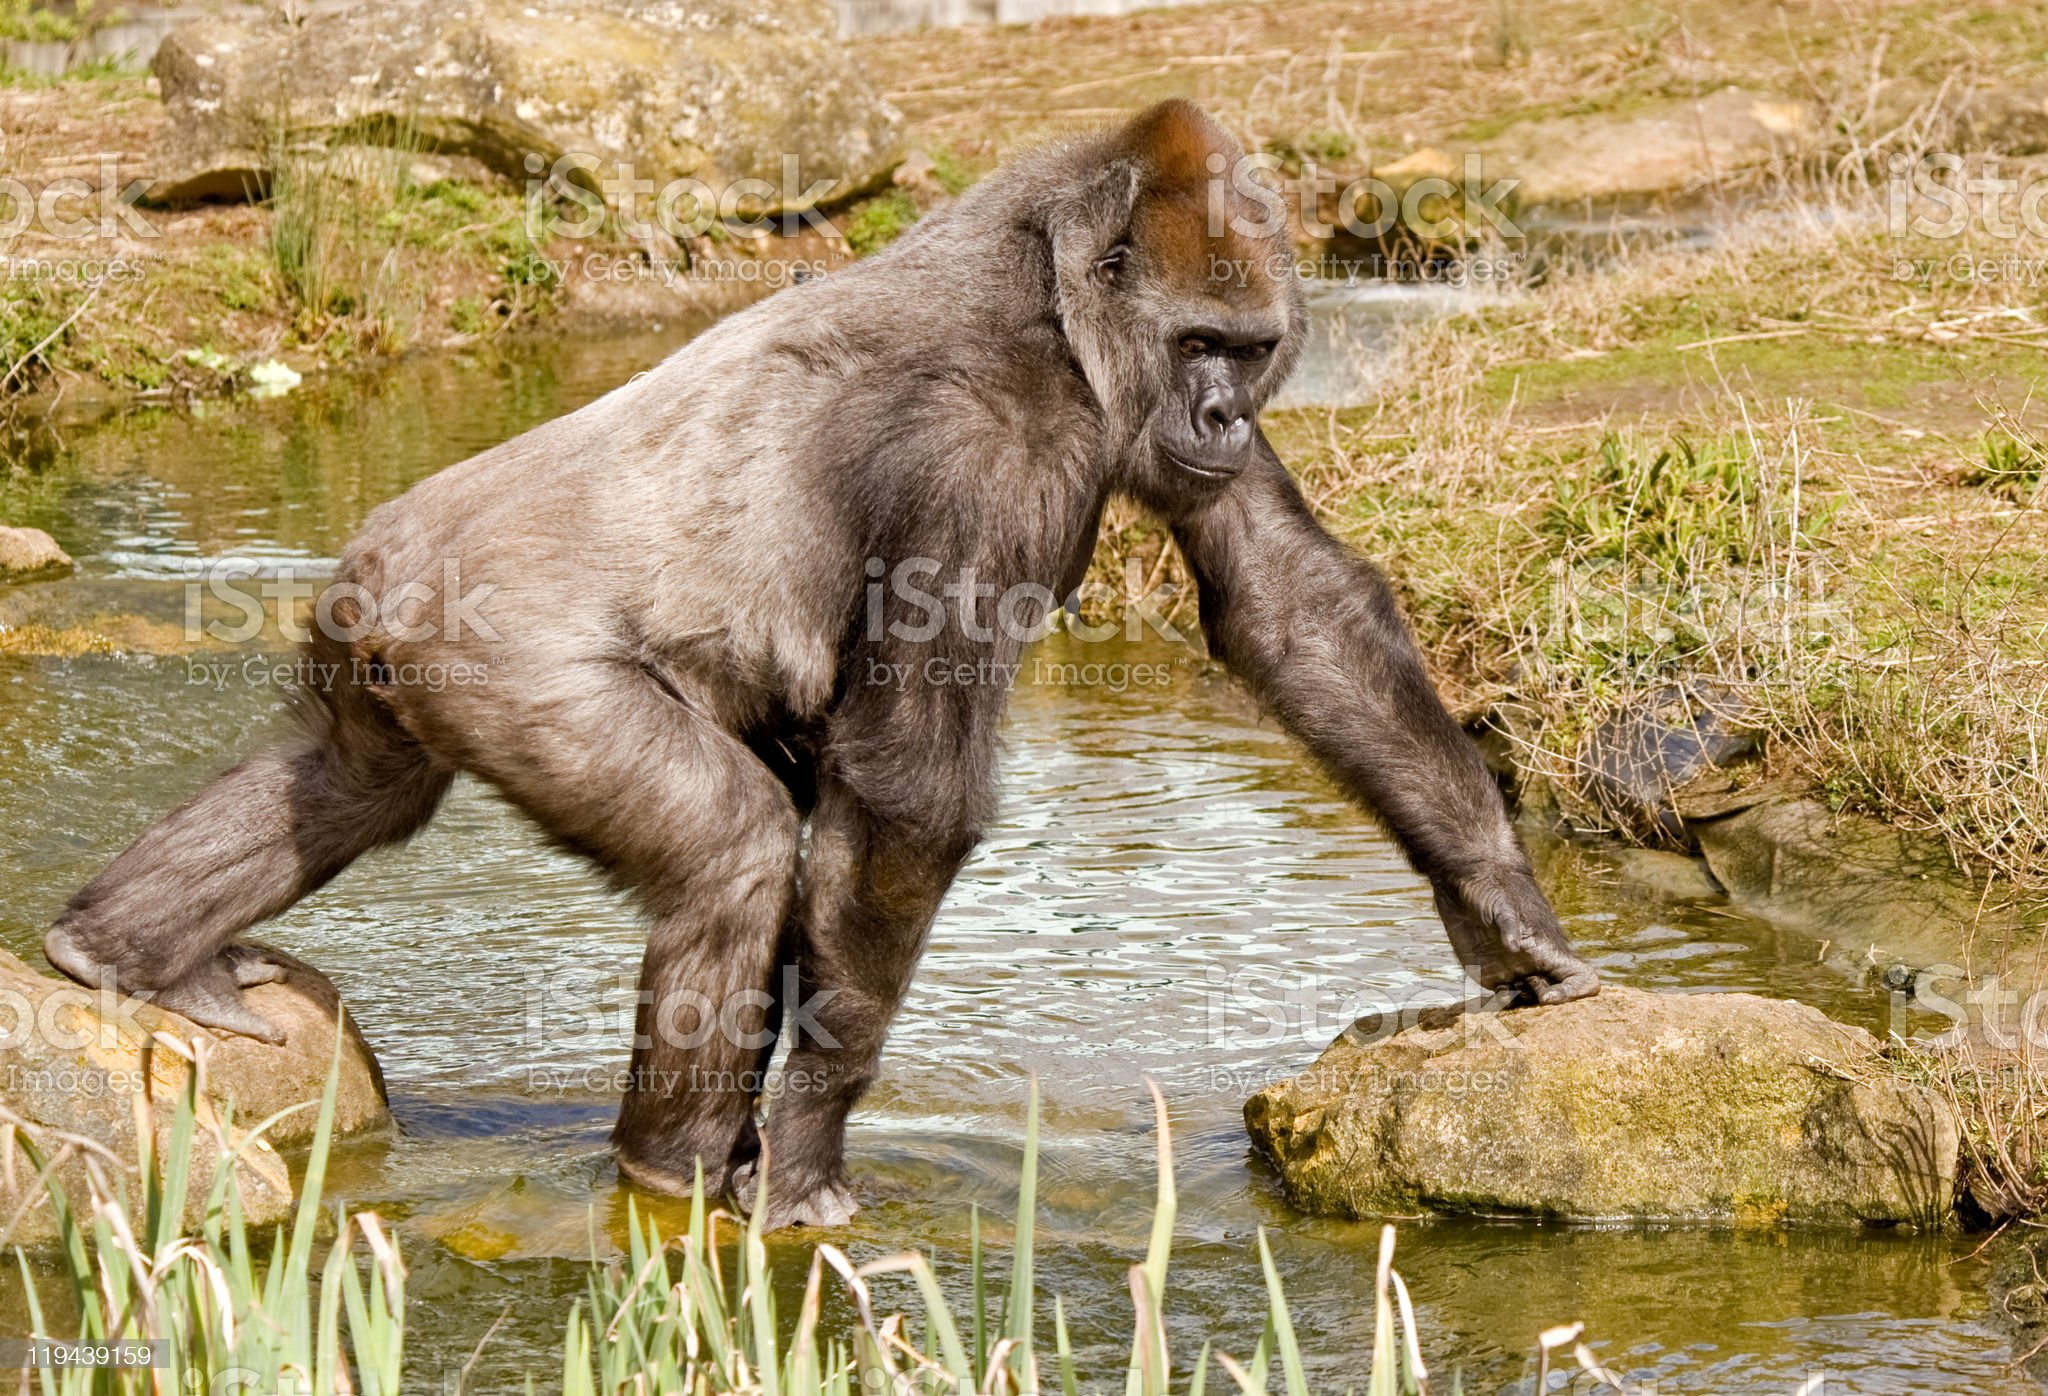 Gorilla walking over a pond royalty-free stock photo